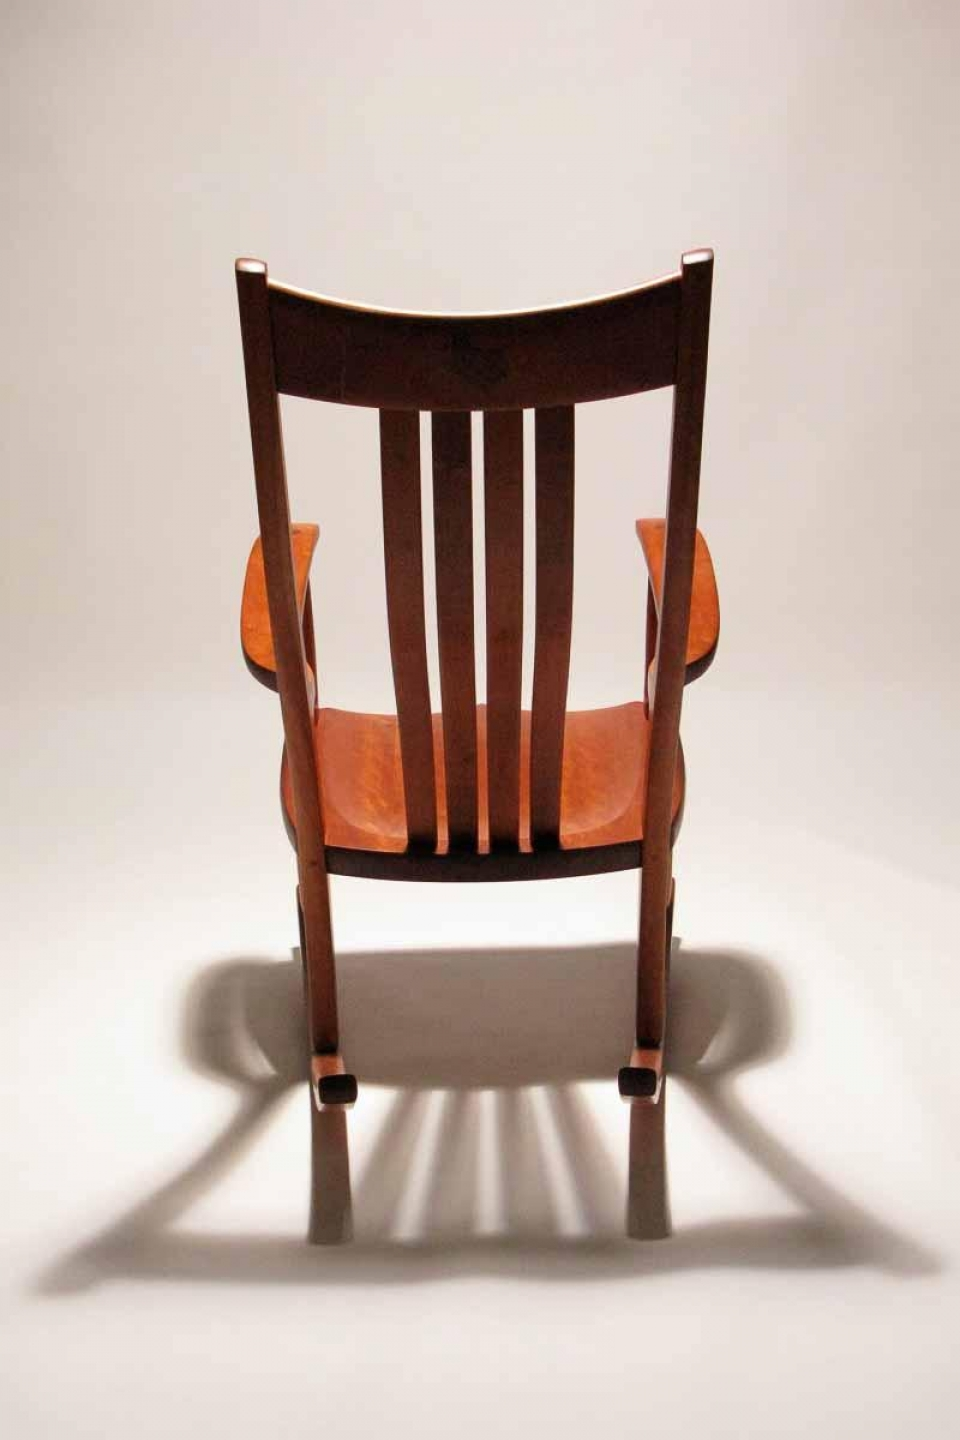 rocking chair showing light and shadow